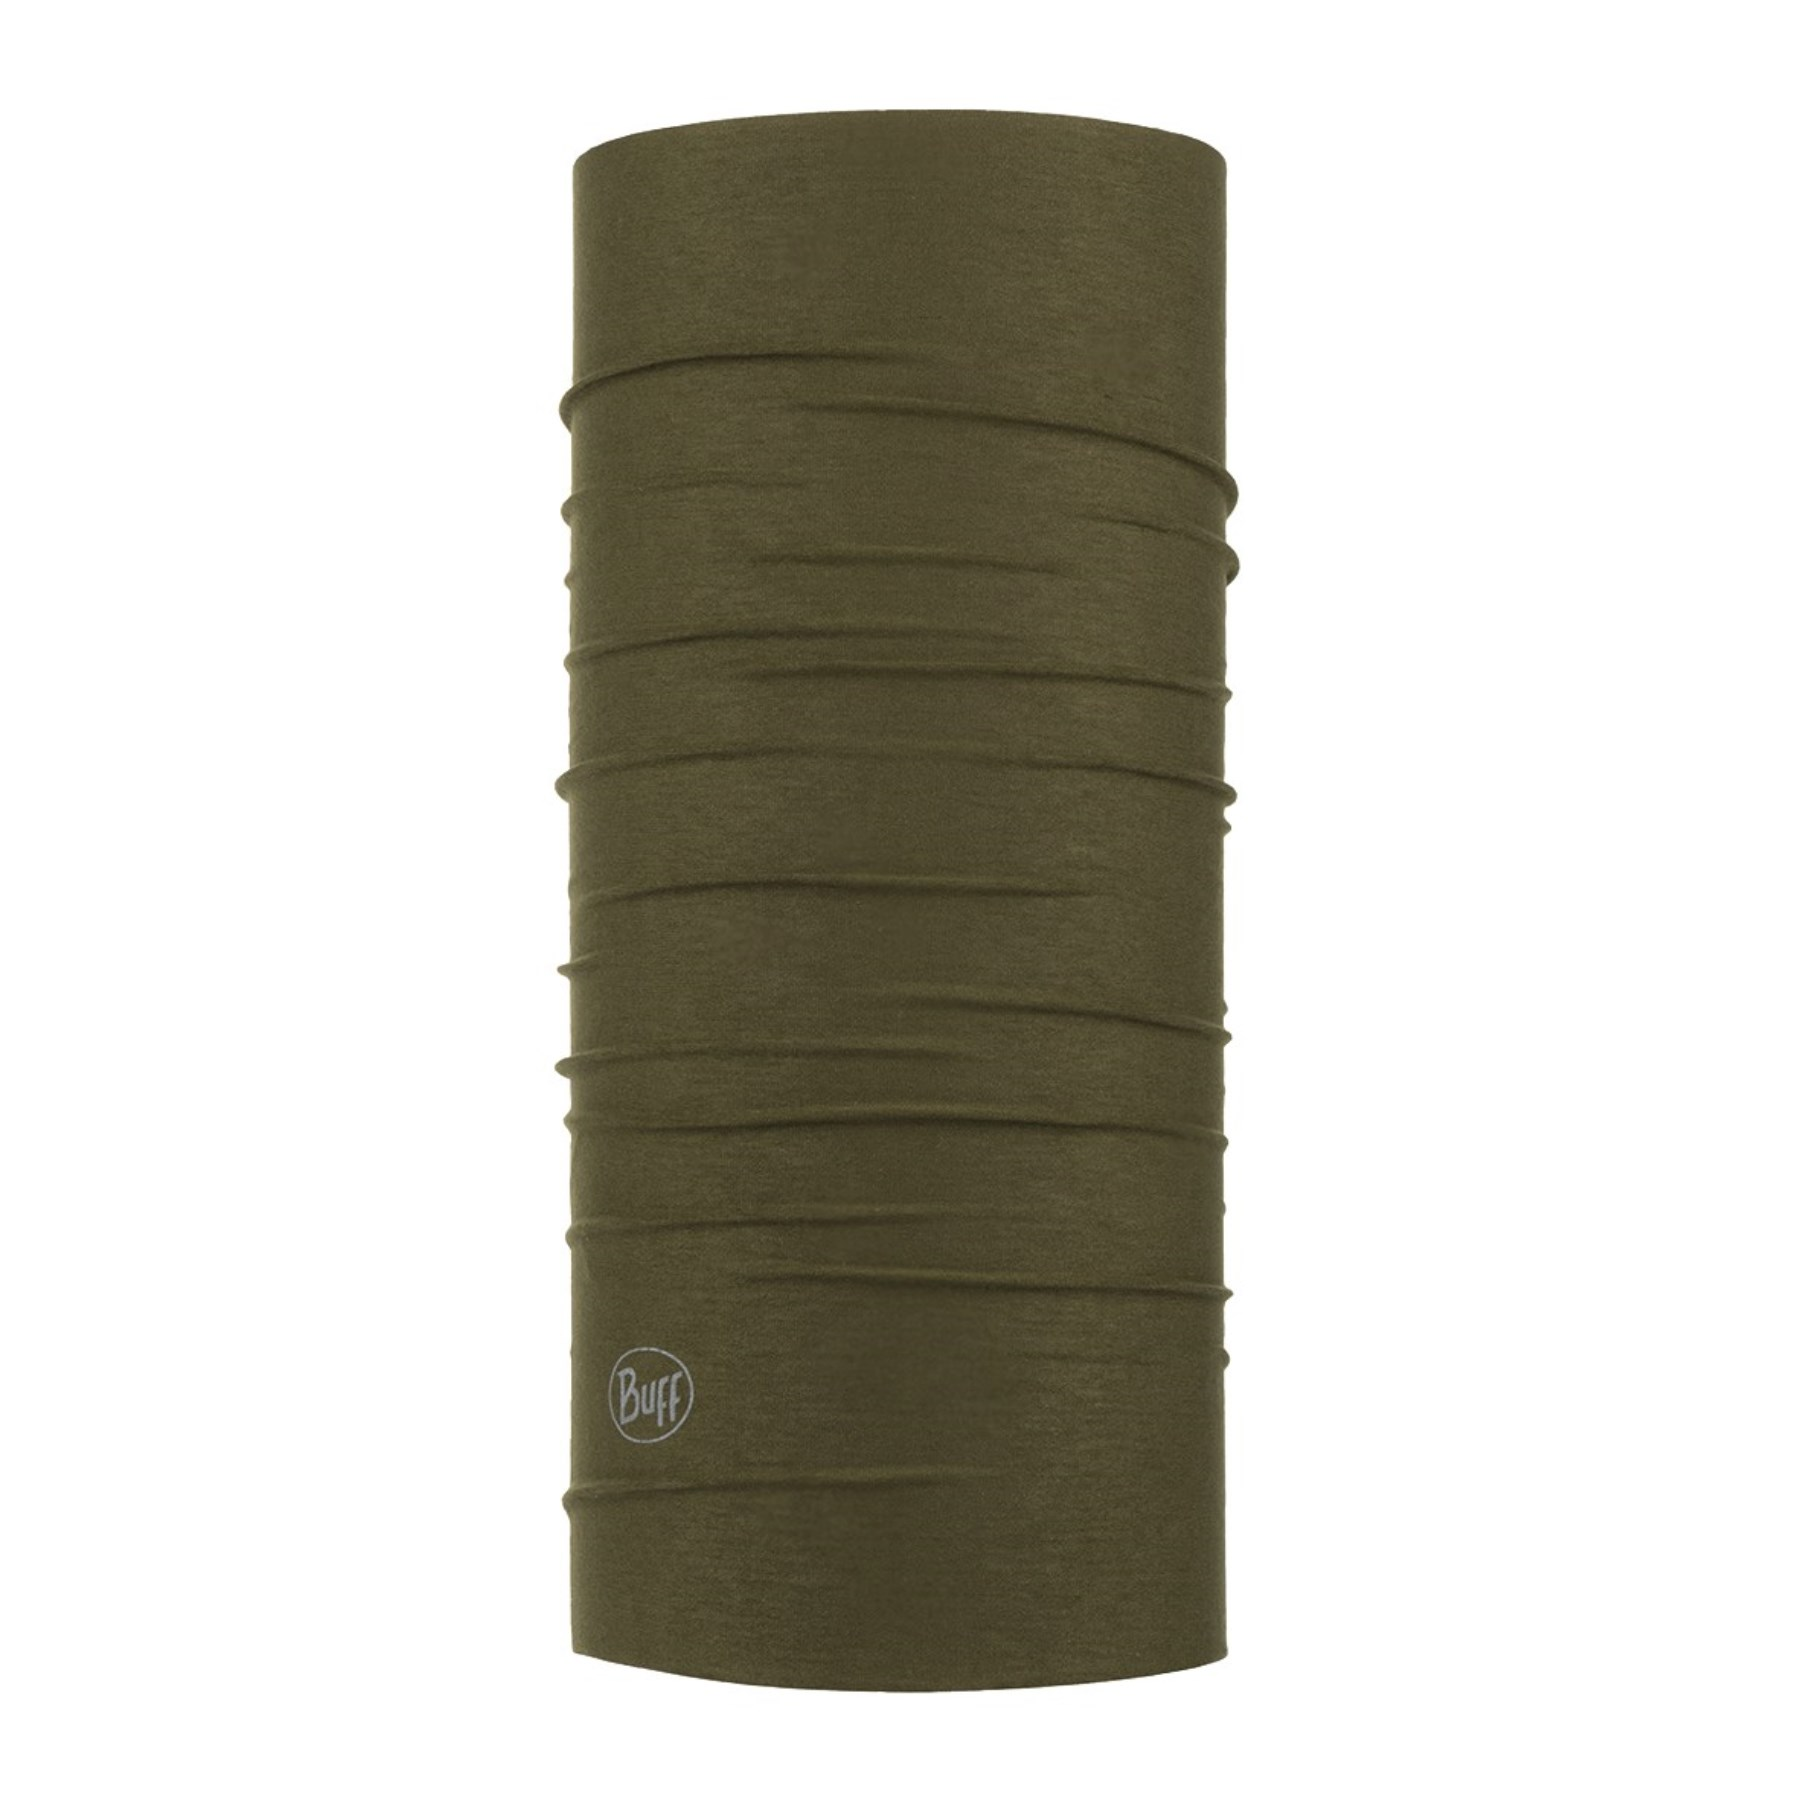 1252772 - Buff solid military